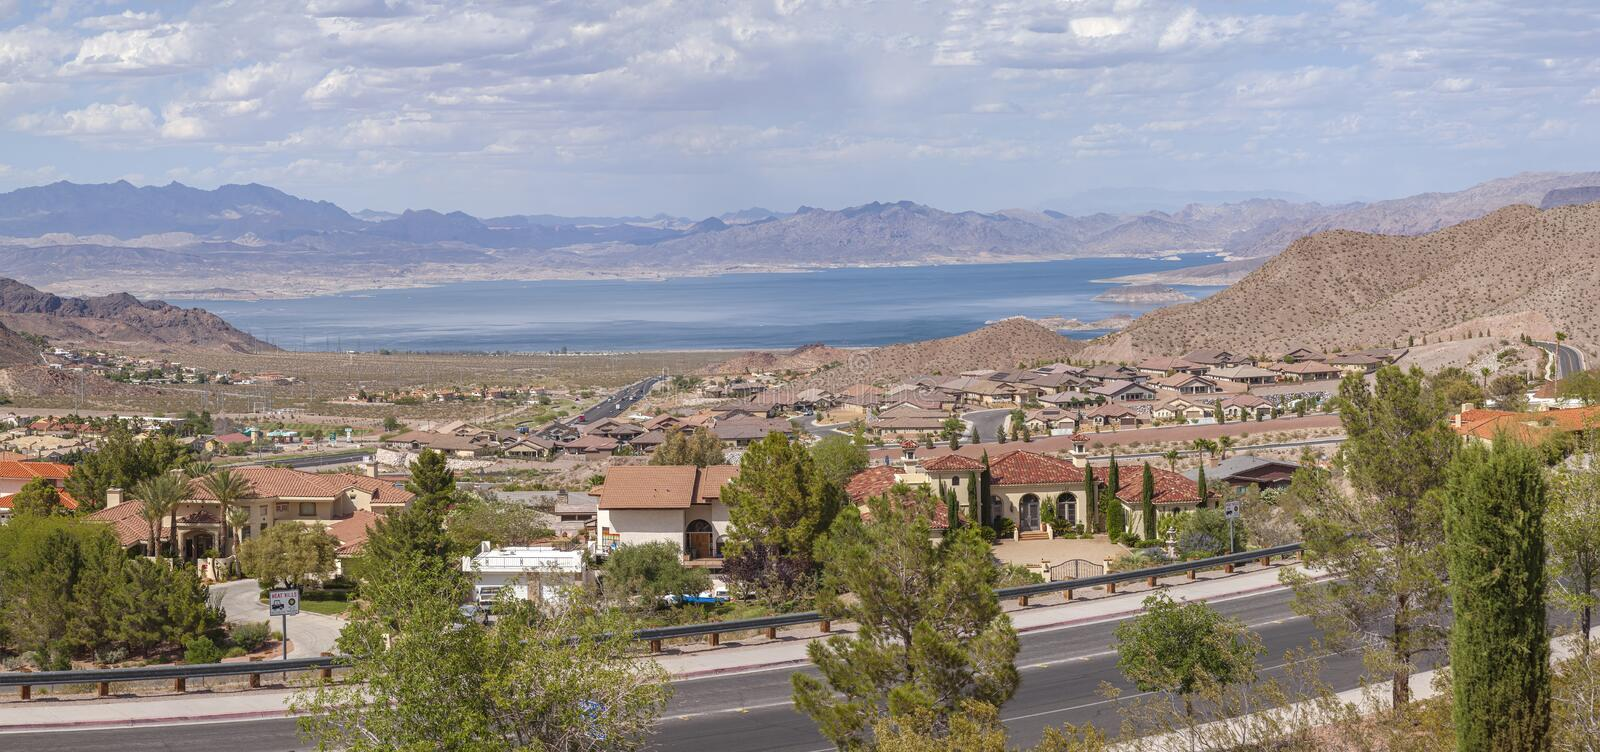 Lake Meade Bolder City Nevada suburb and mountains panorama. Boulder City Nevada suburbs and lake Meade with surrounding mountains panorama royalty free stock images